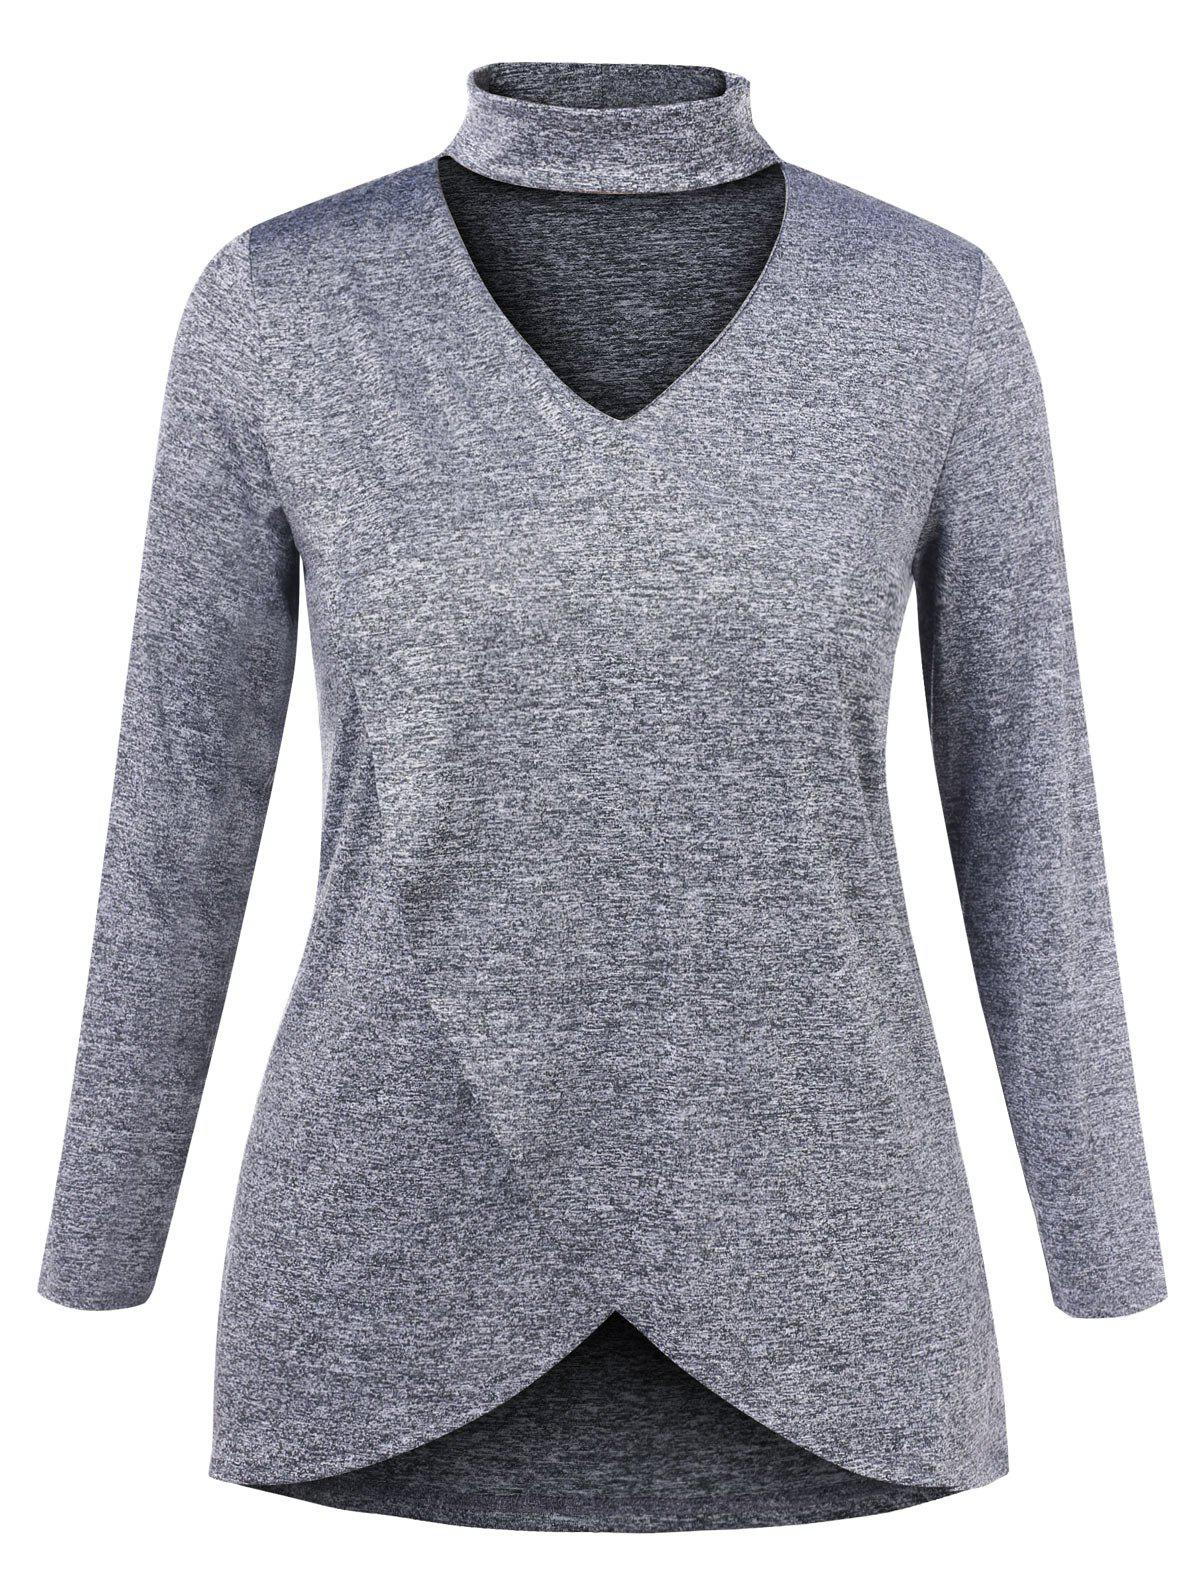 Plus Size Cut Out Choker Long Sleeve T Shirt - GRAY 1X